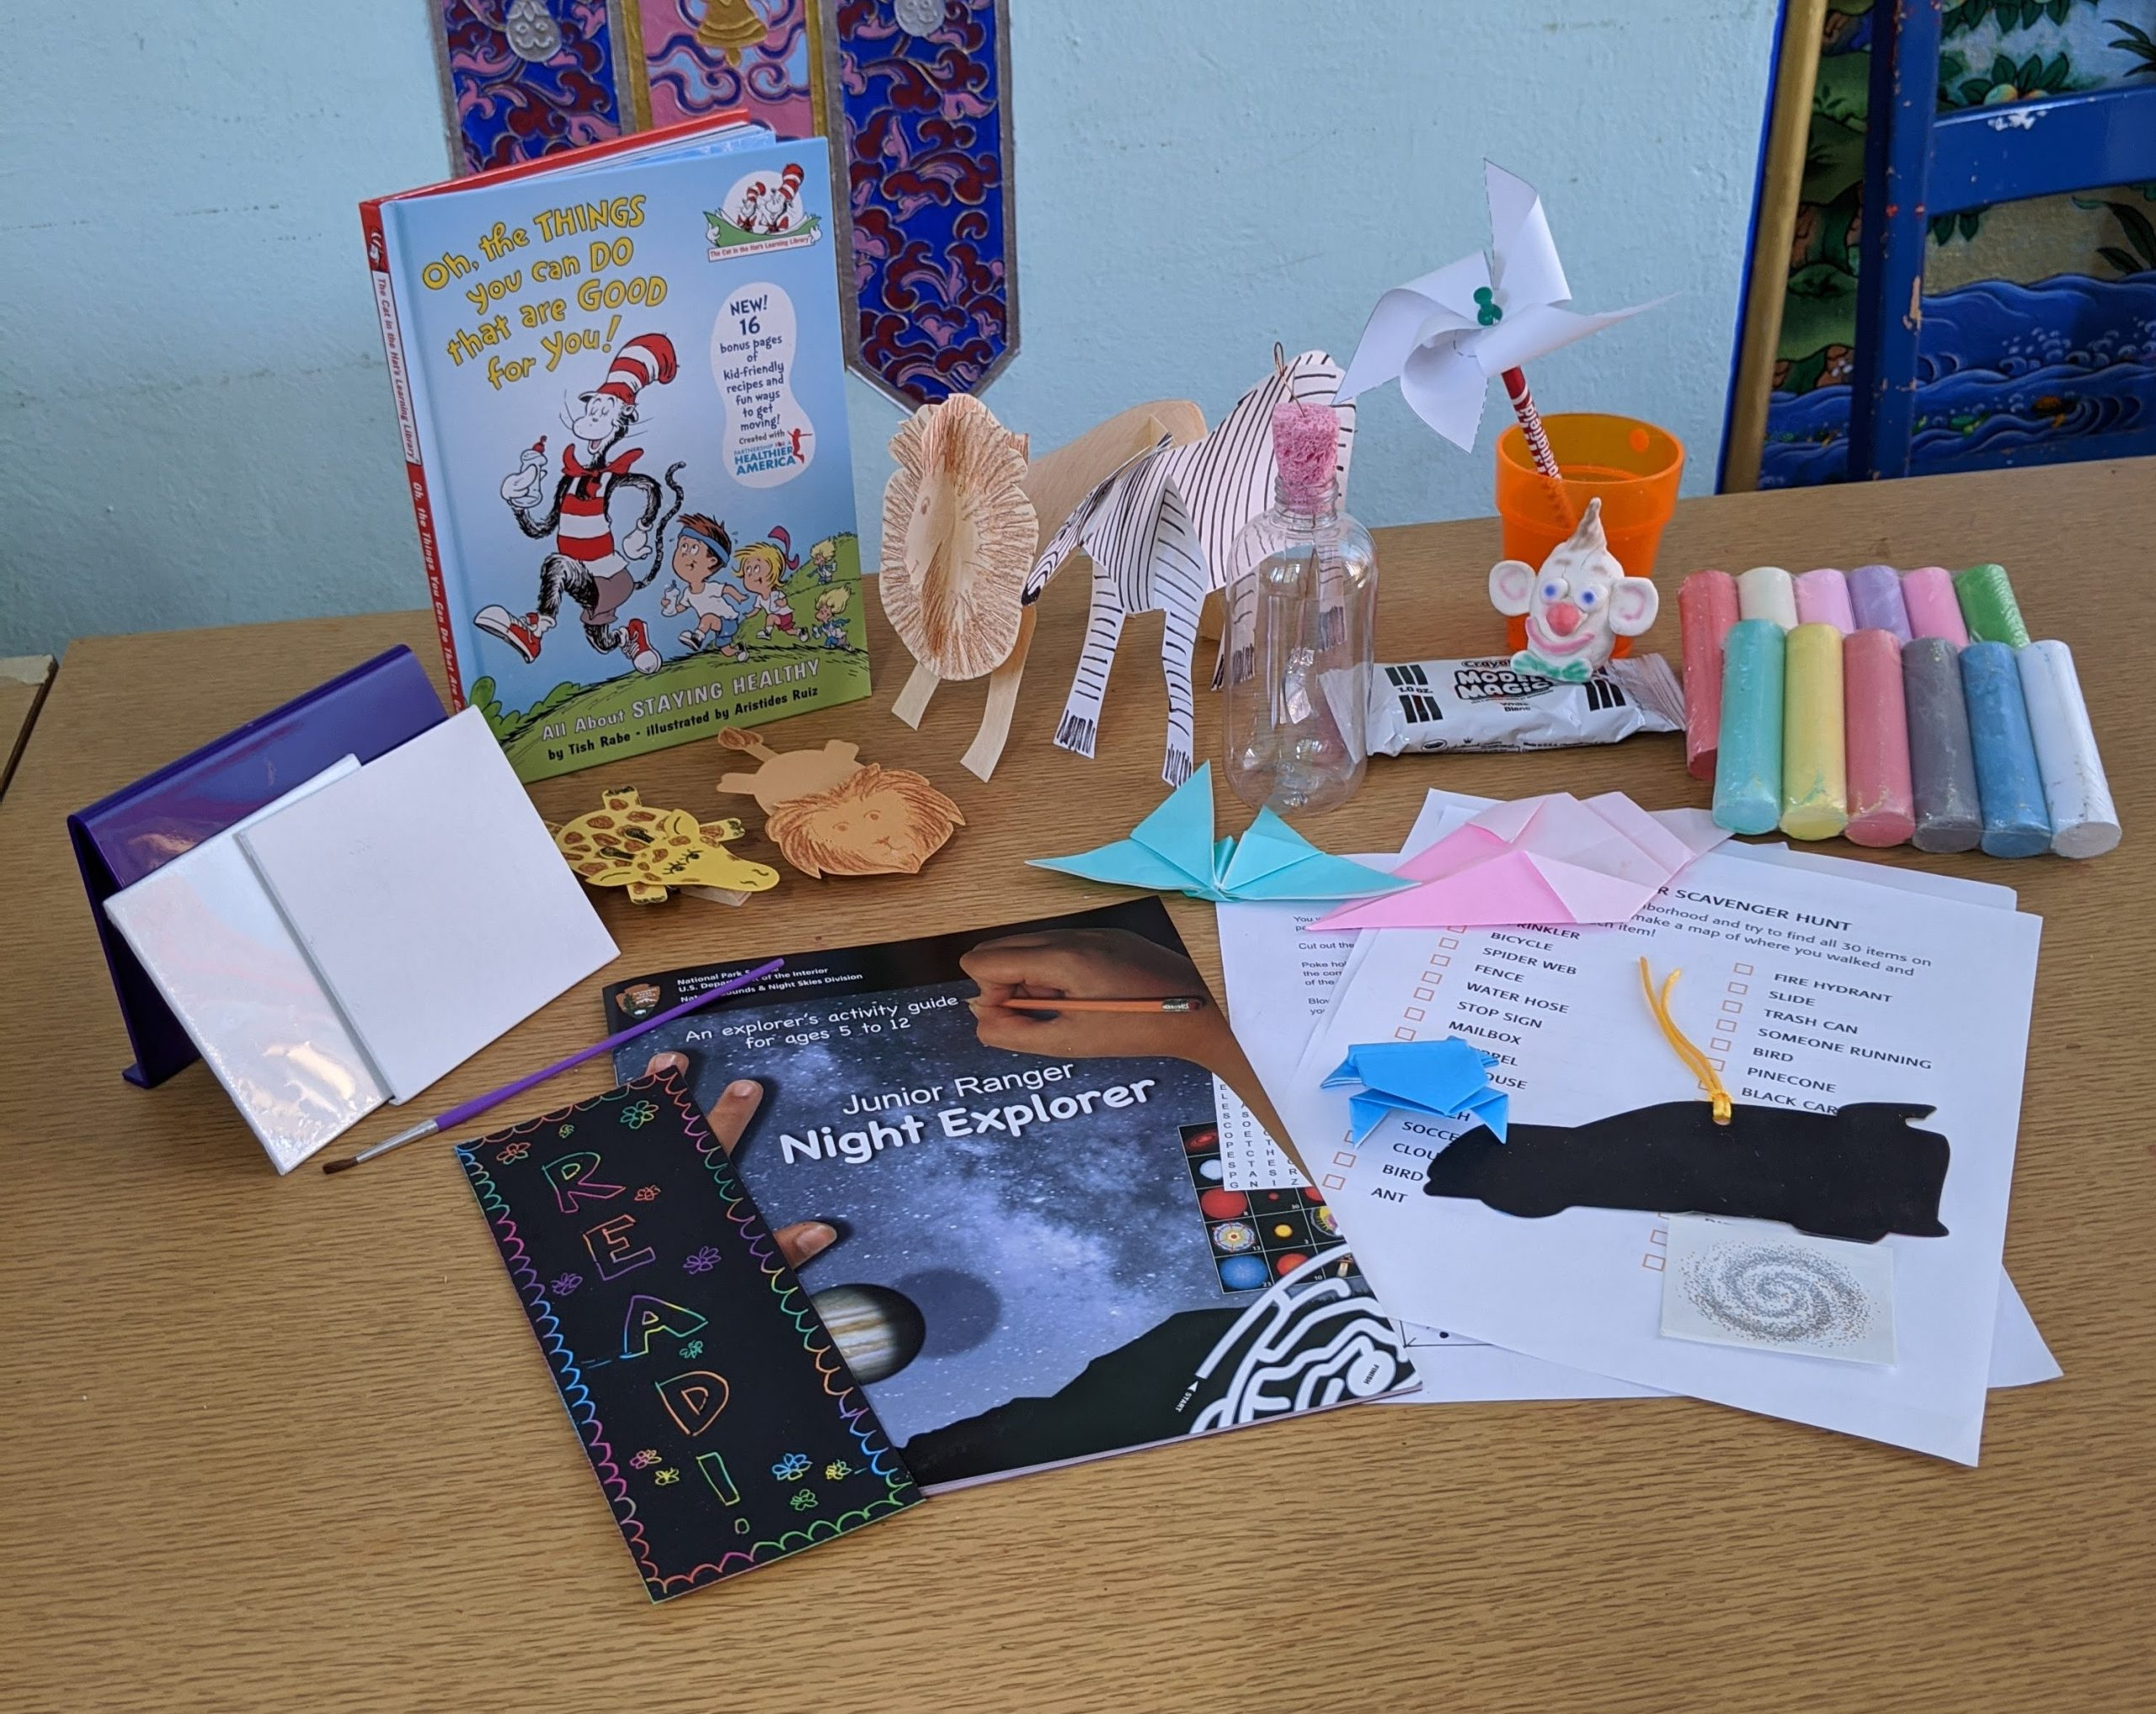 Image of multiple craft and activities supplies